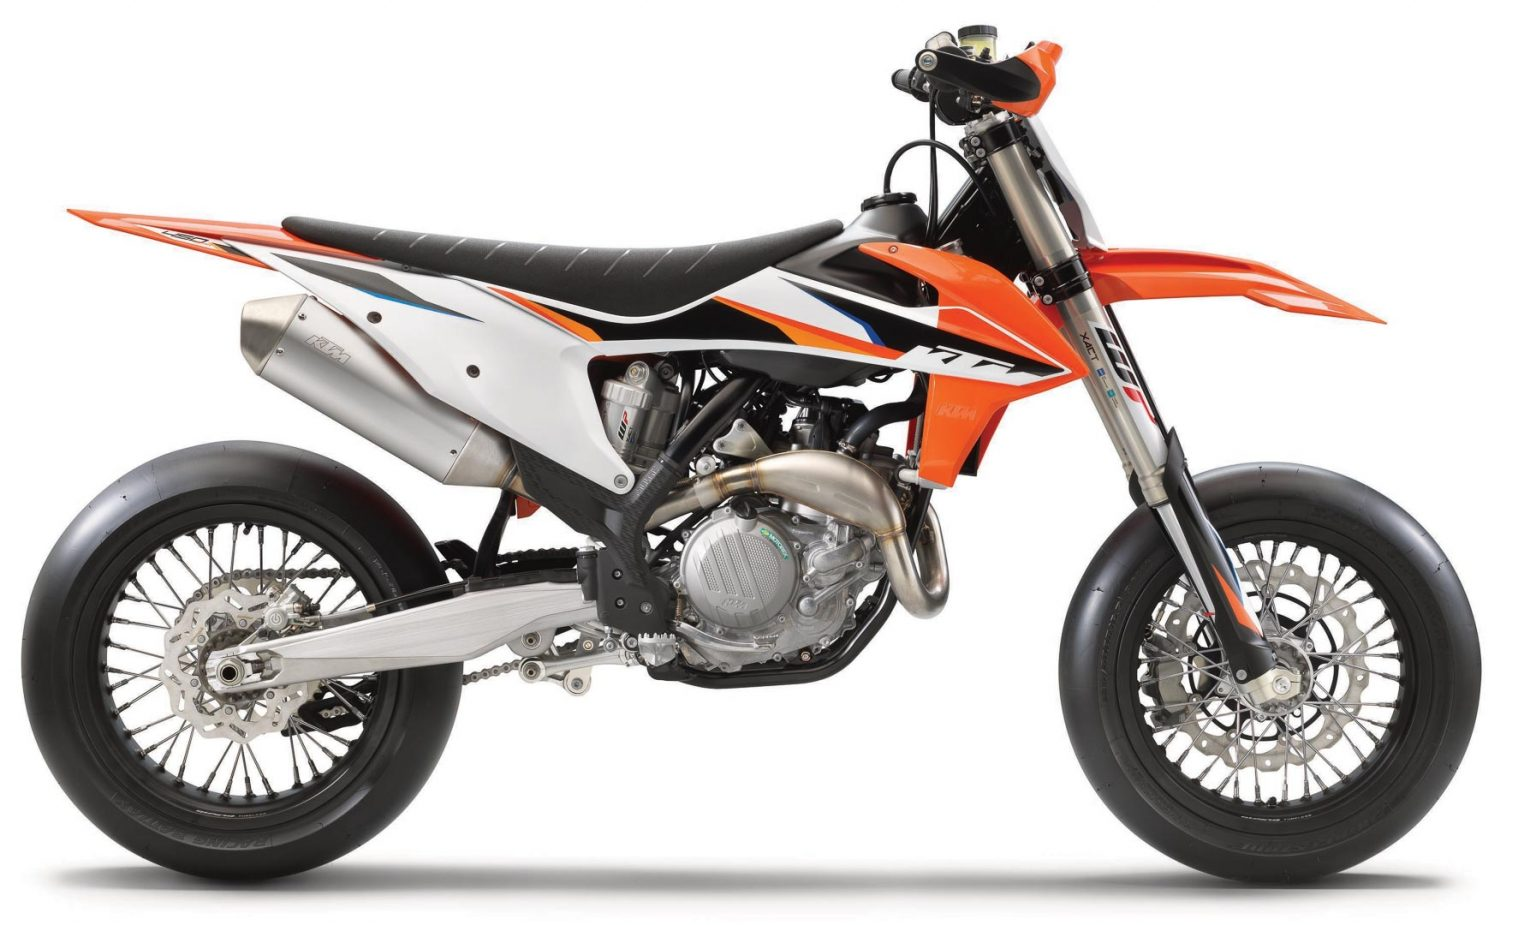 2021 KTM 450 SMR FIRST LOOK (7 FAST FACTS ON THE SUPERMOTO RETURN)